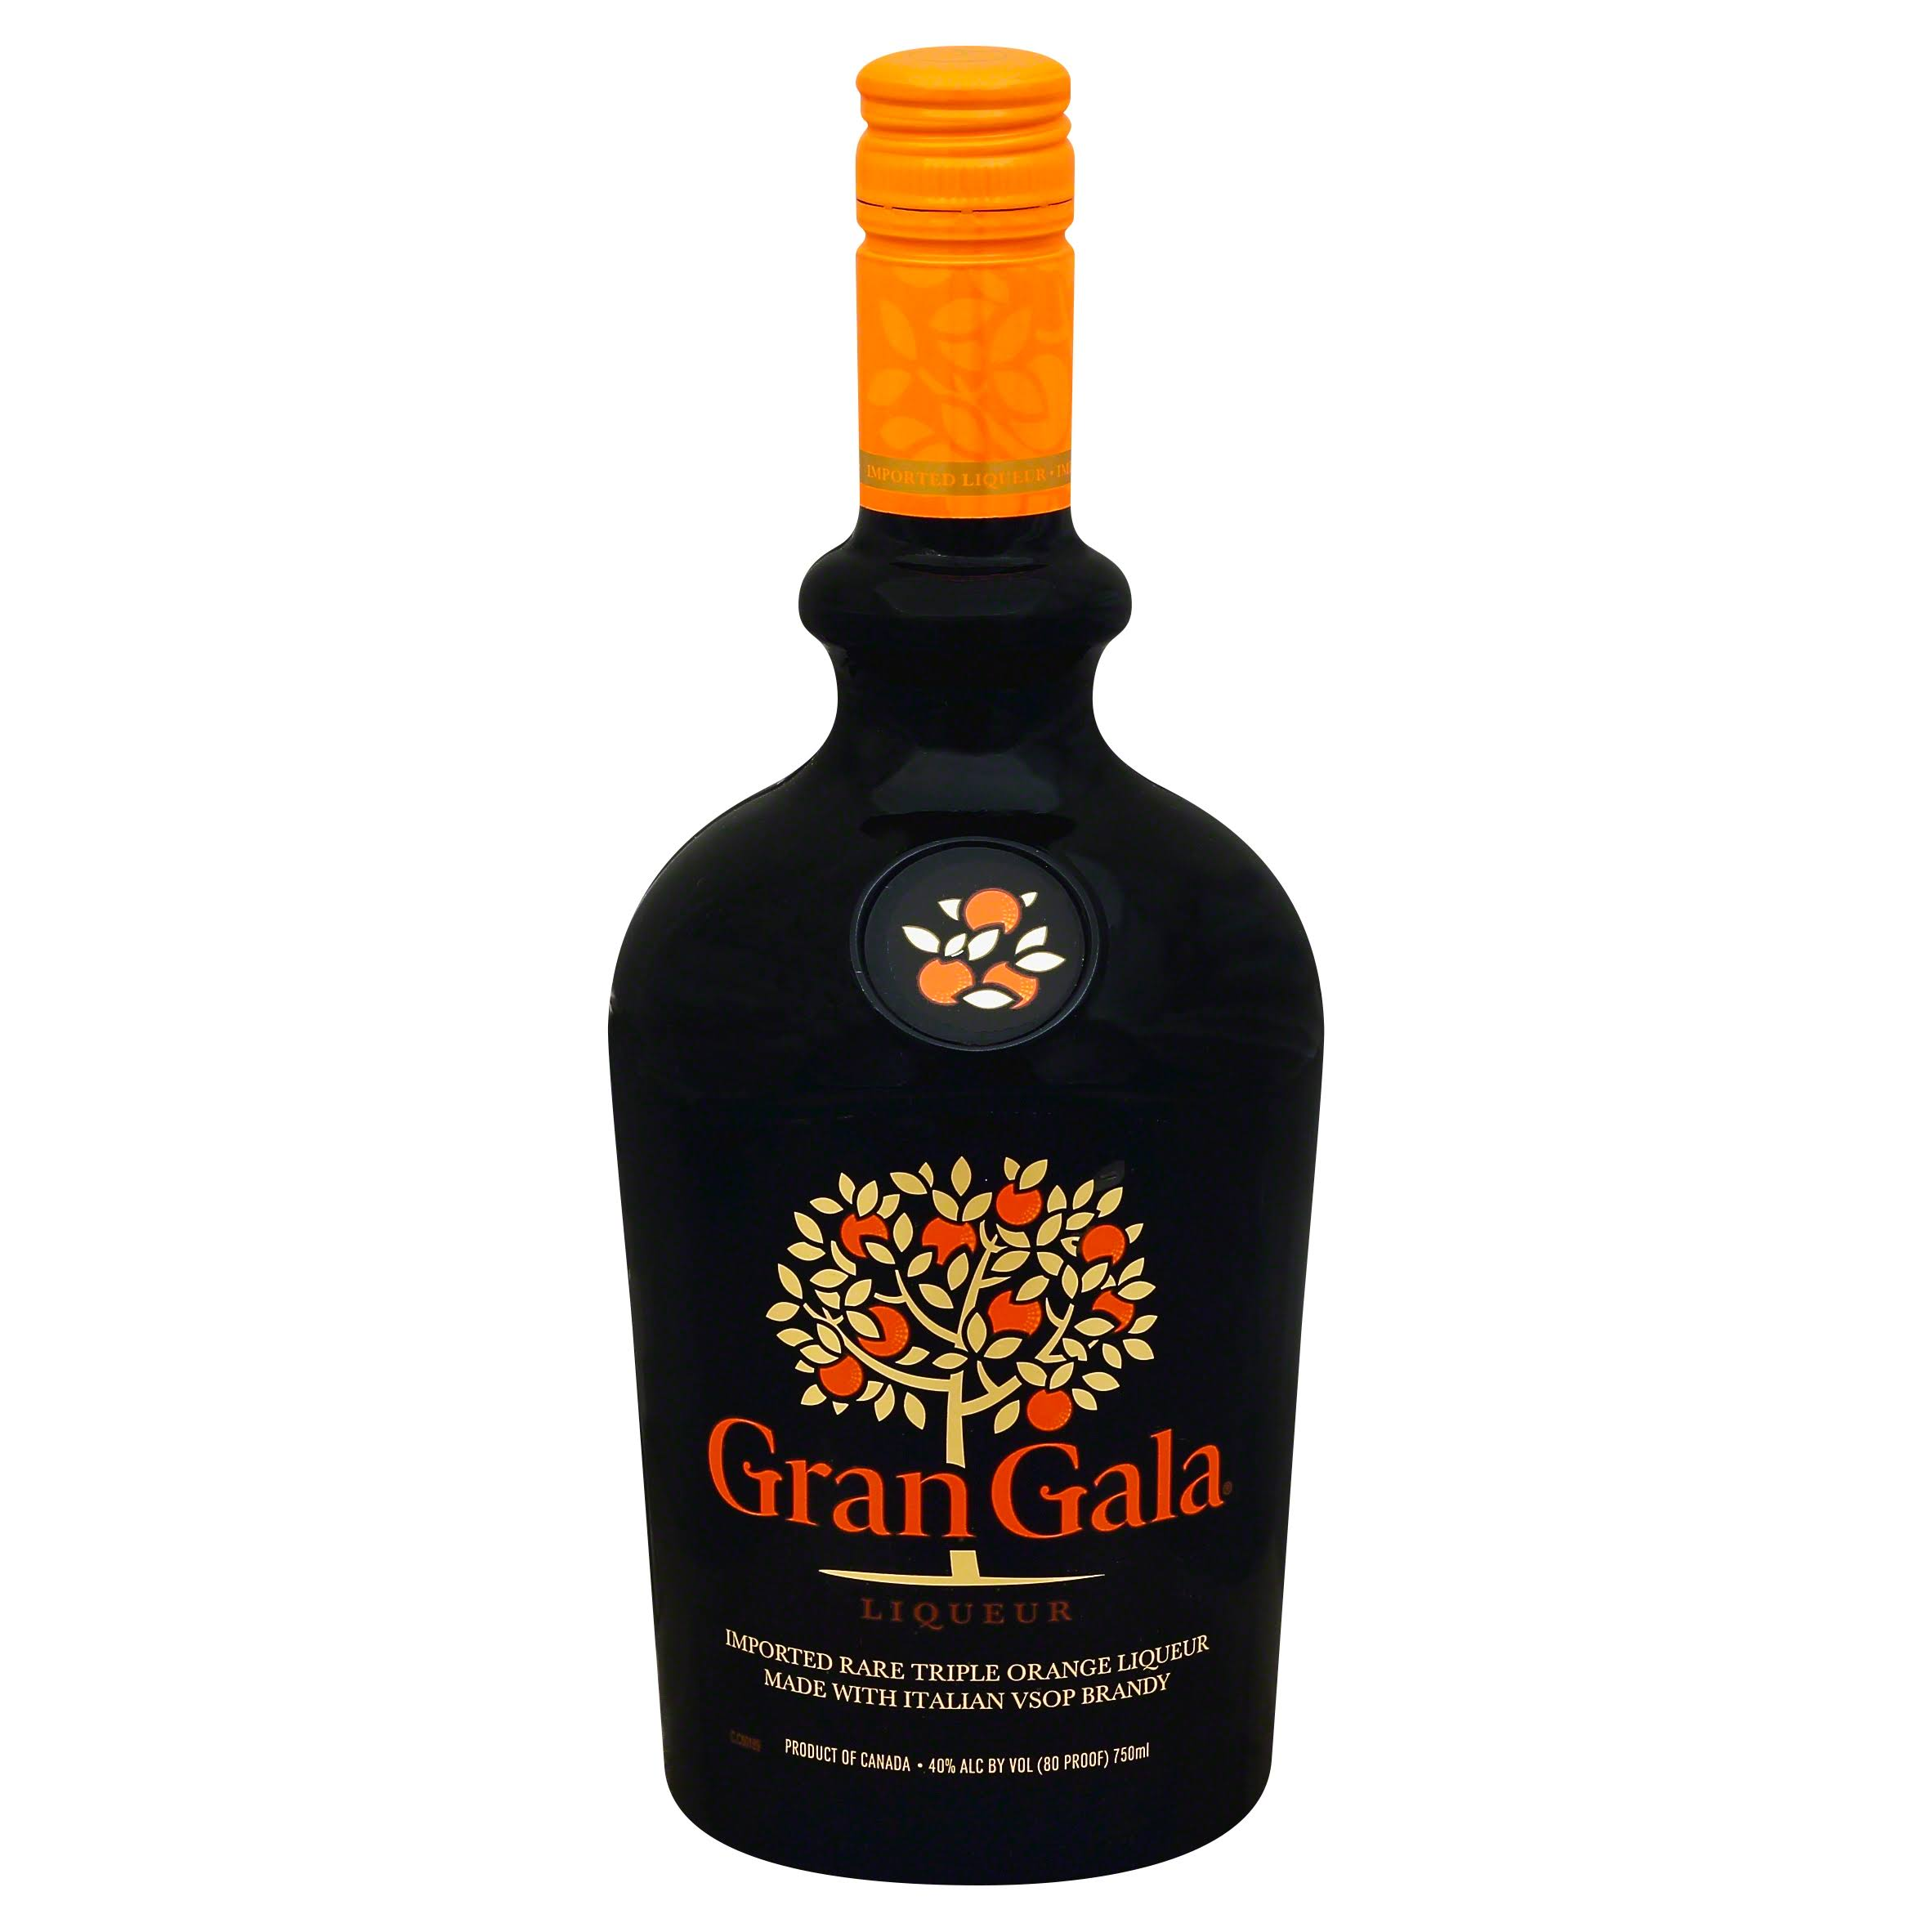 Gran Gala Triple Orange Liqueur - 750 ml bottle